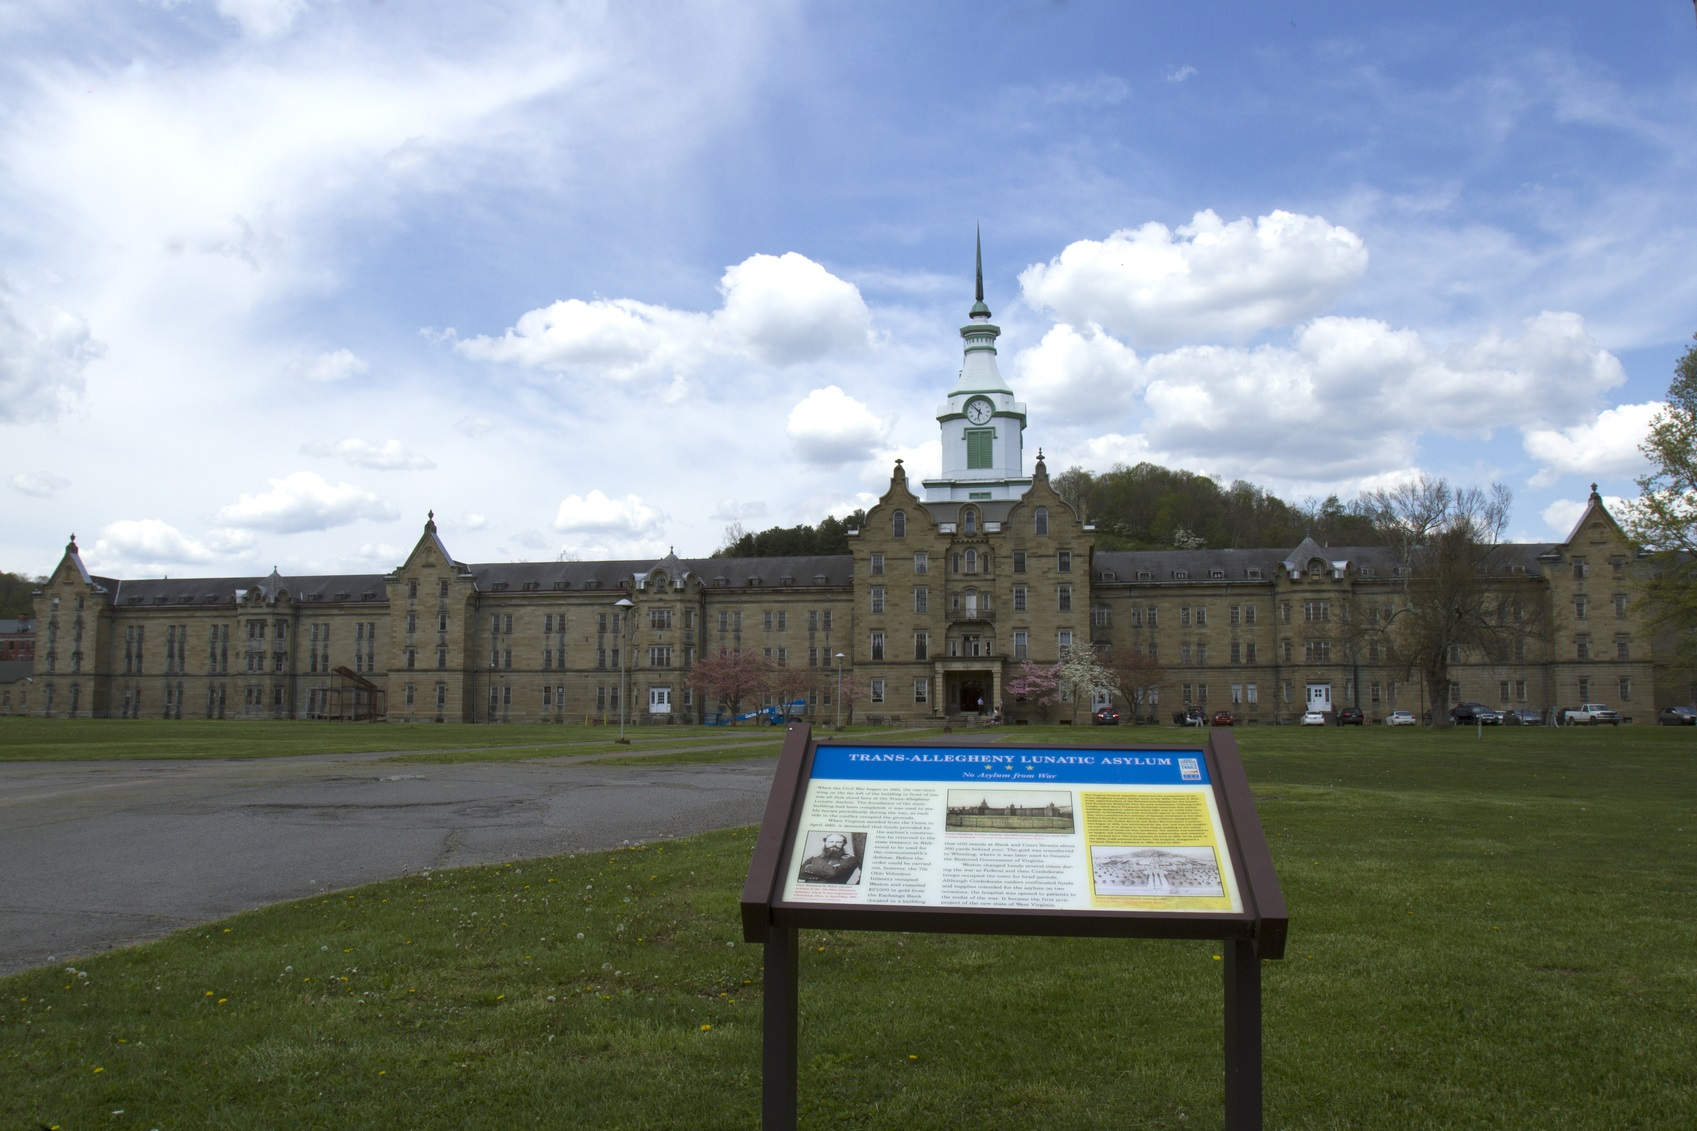 Trans-Allegheny Lunatic Asylum West Virginia